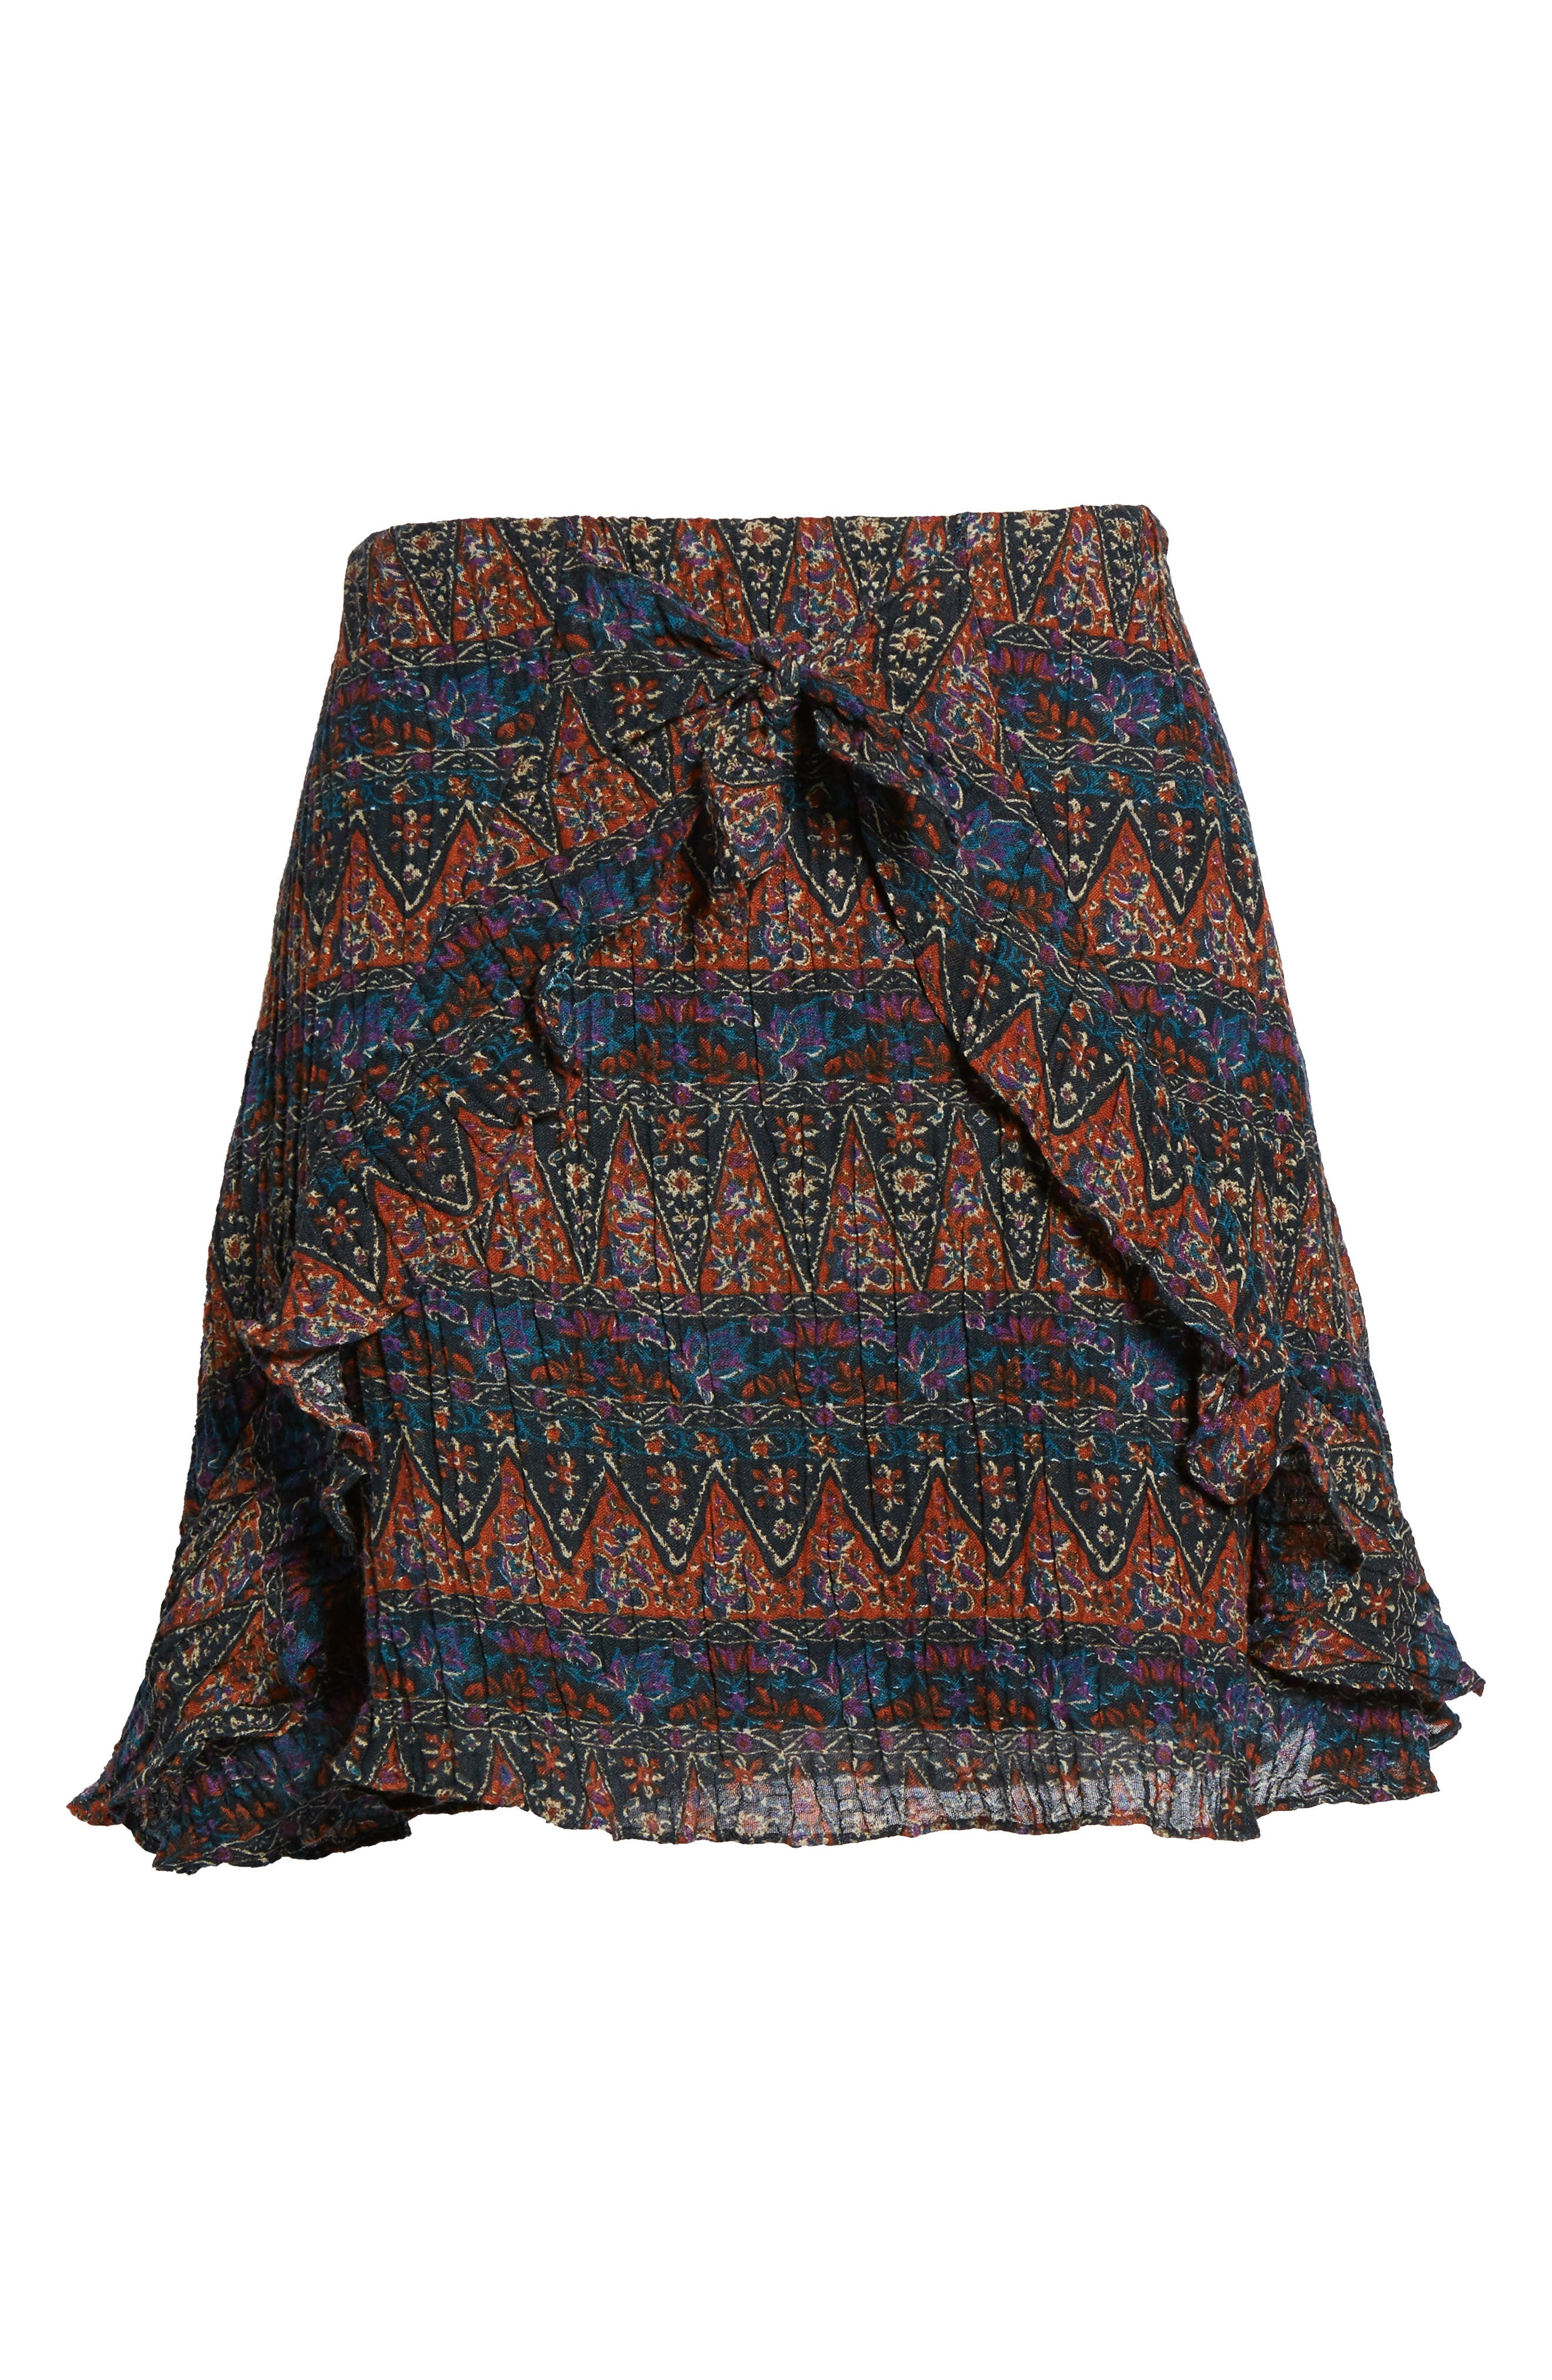 Bali Tie Front Skirt,                             Alternate thumbnail 6, color,